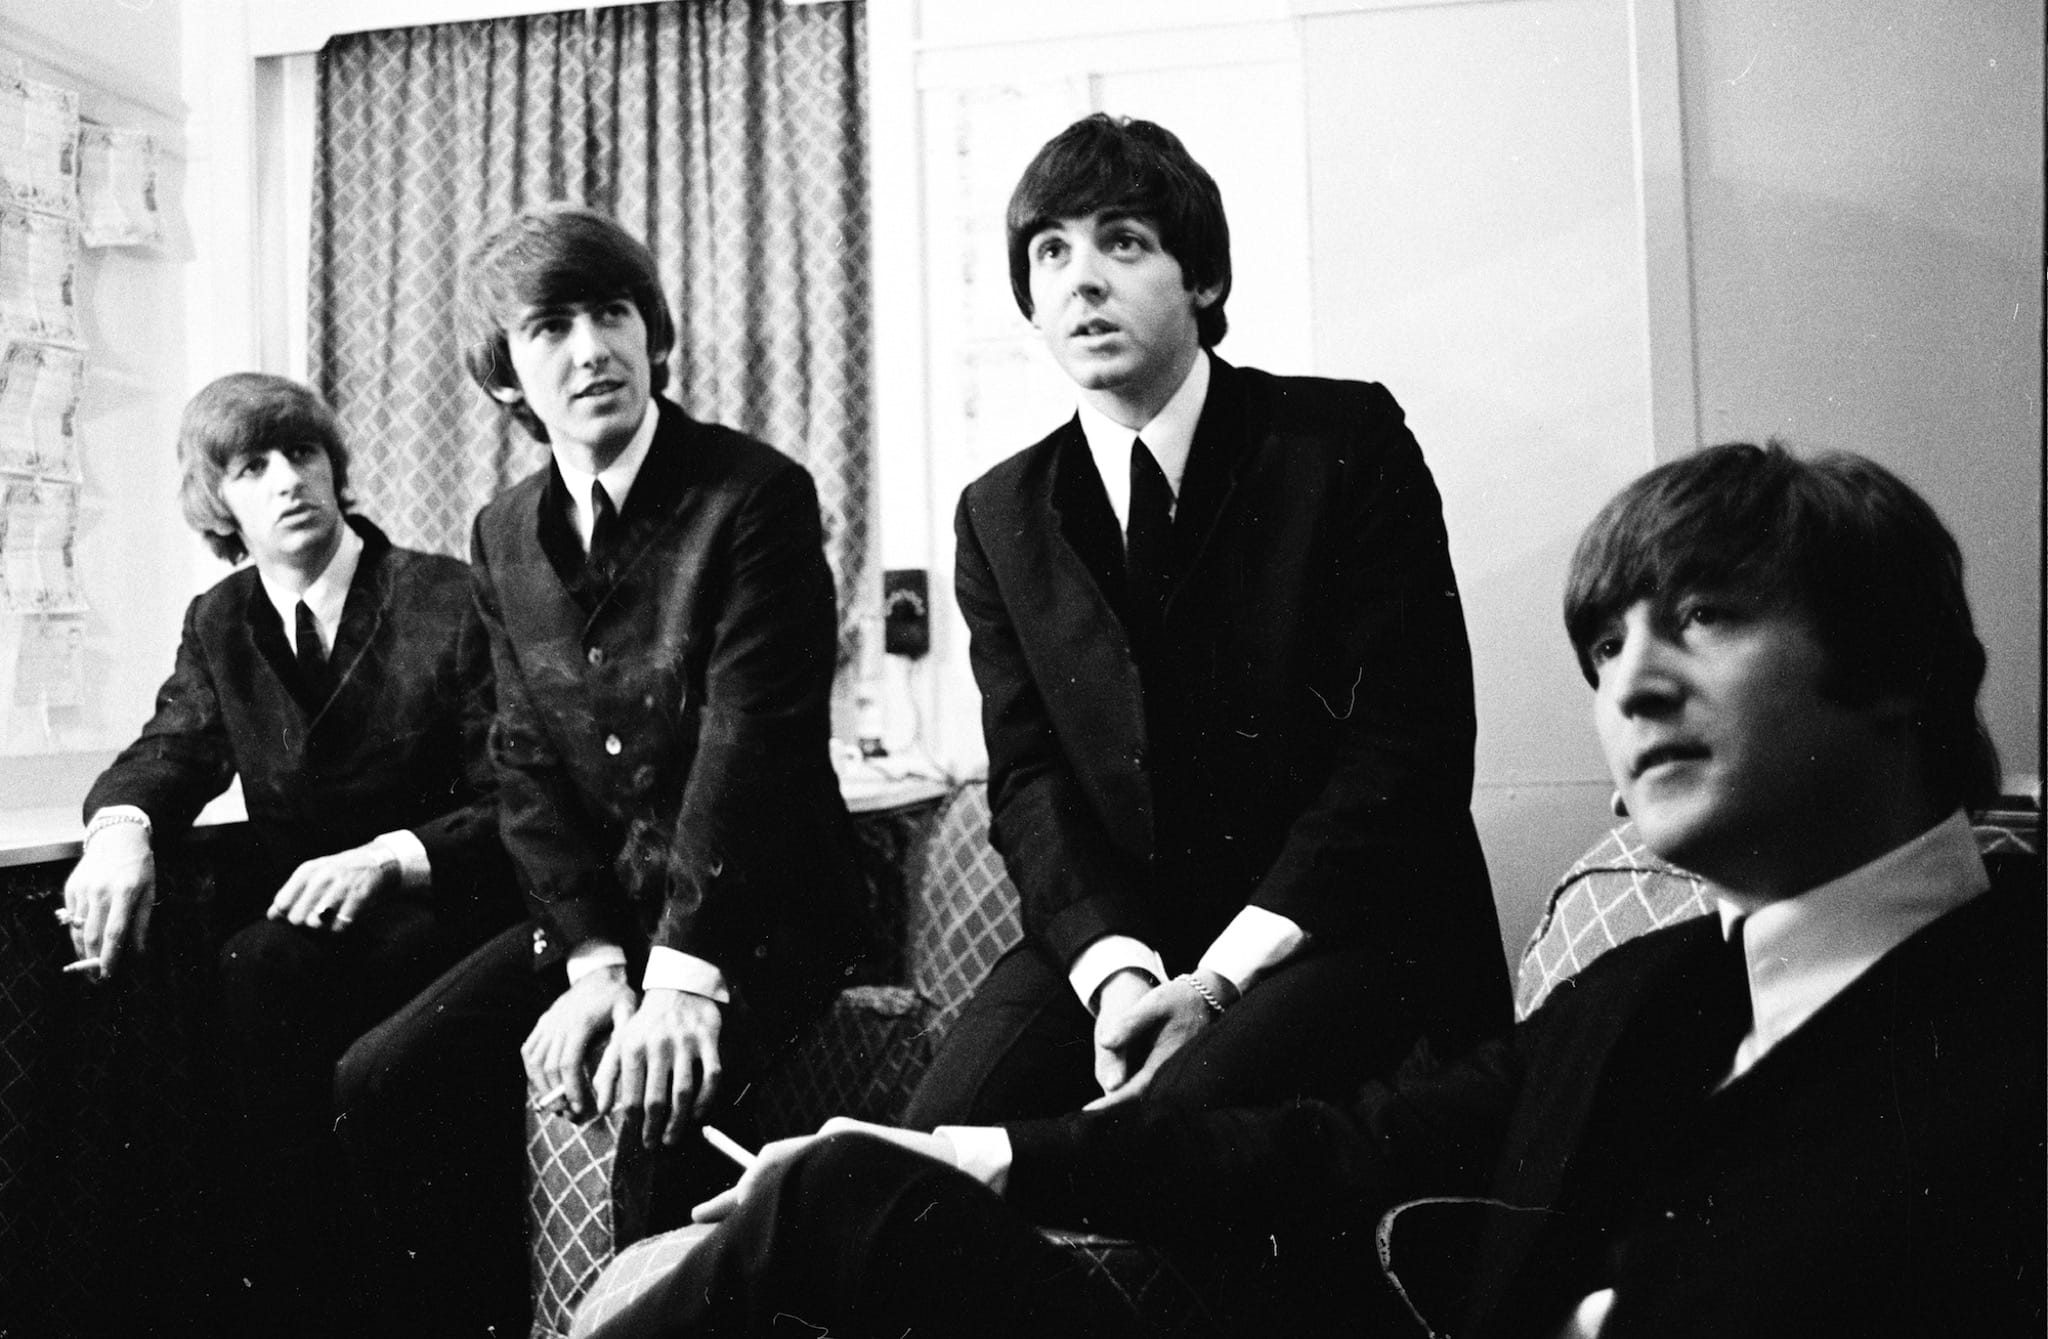 the-beatles-eight-days-a-week-image-3